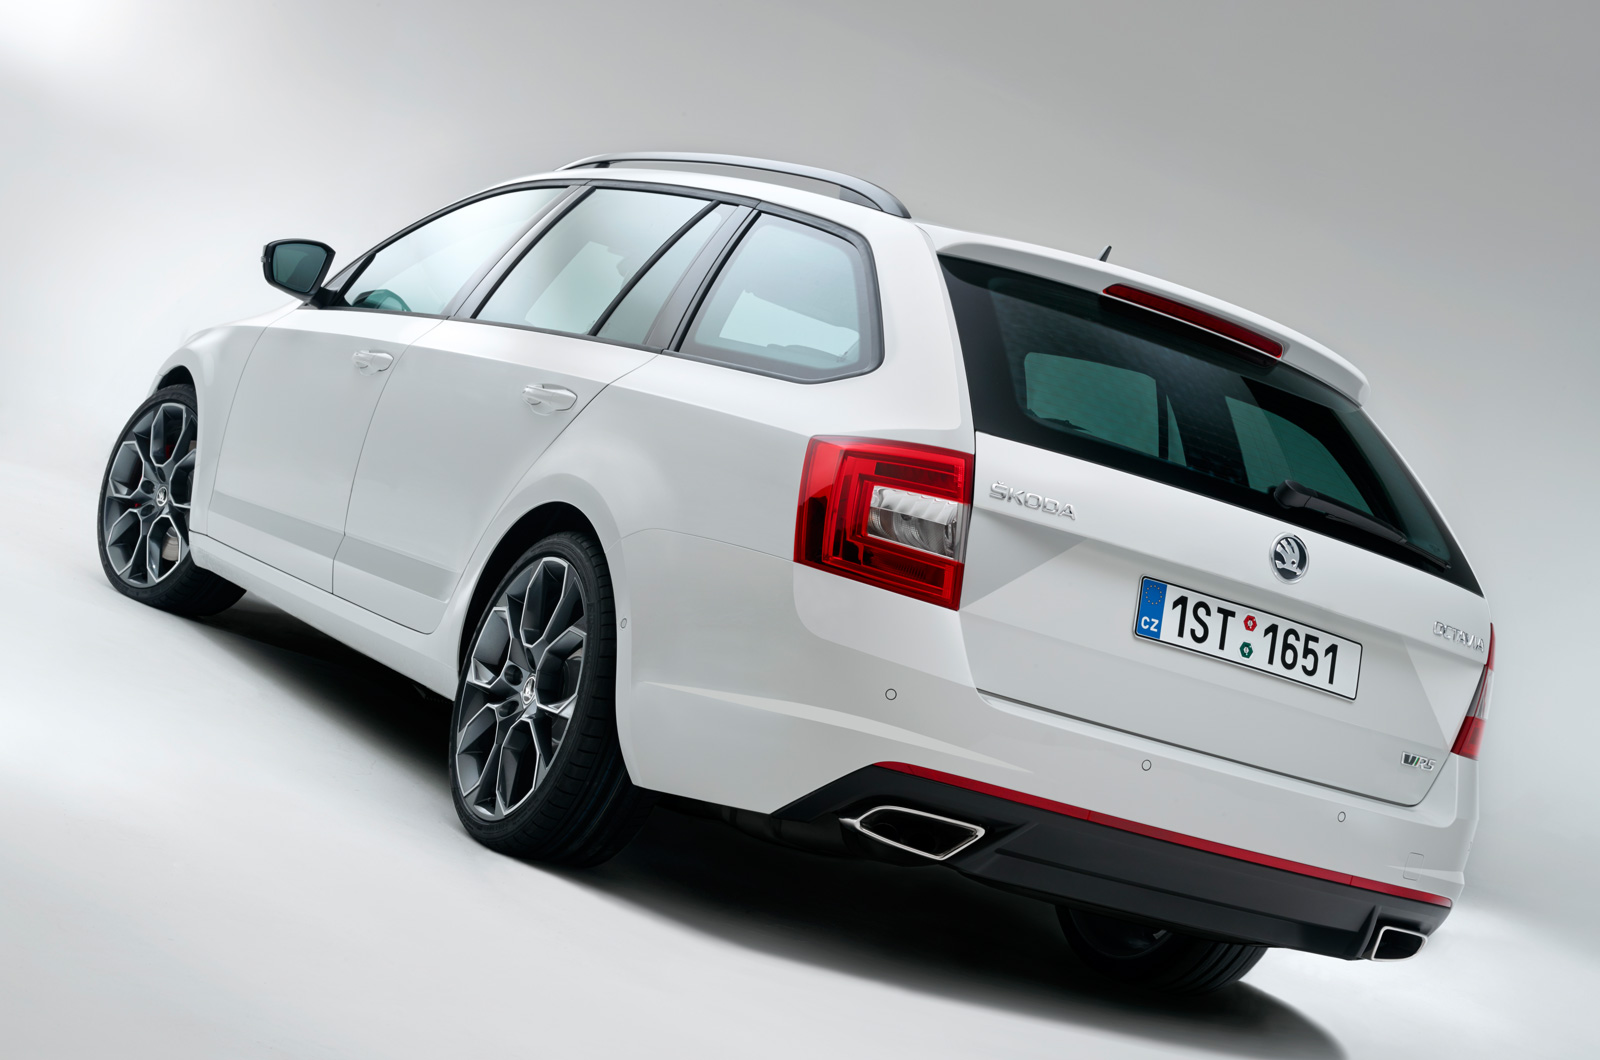 Skoda octavia vrs revealed sedan and combi 06 05 2013 05 44 am 1 available with 2 0 tsi 220 hp and 2 0 tdi with 184 hp i think it looks excellent